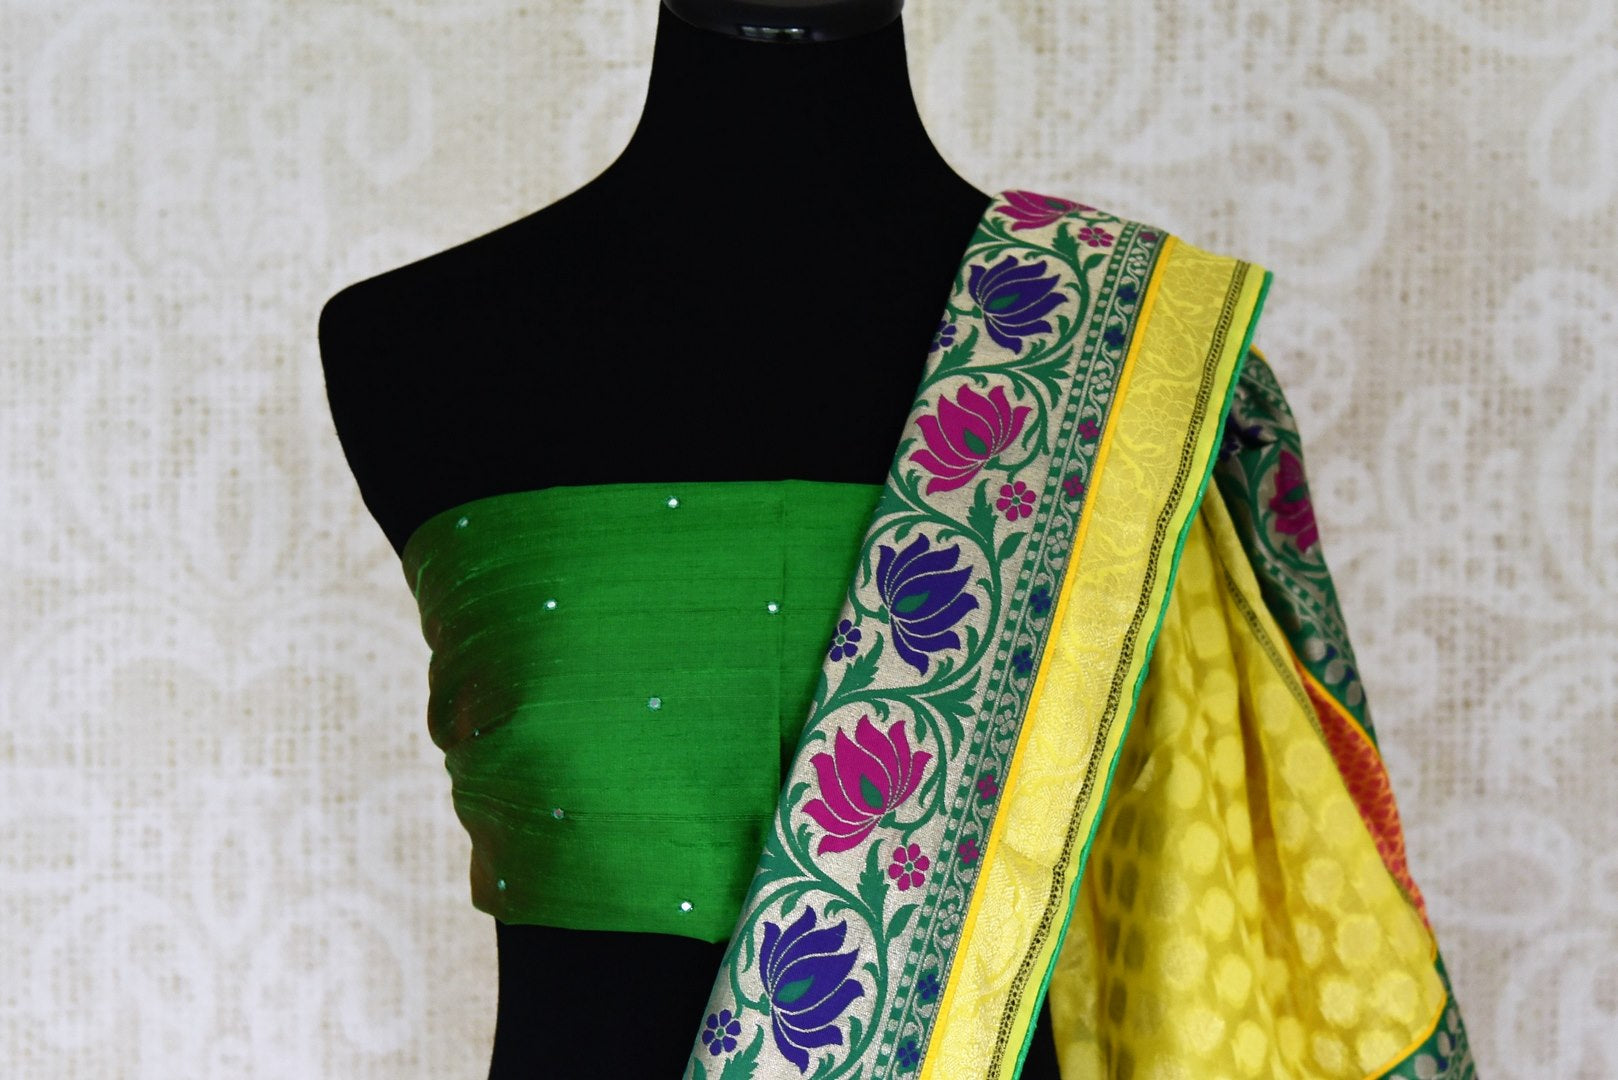 Buy bright yellow silk saree online in USA with floral zari minakari border. Shop the latest Indian women clothing and designer sarees for weddings and special occasions from Pure Elegance Indian clothing store in USA.-blouse pallu